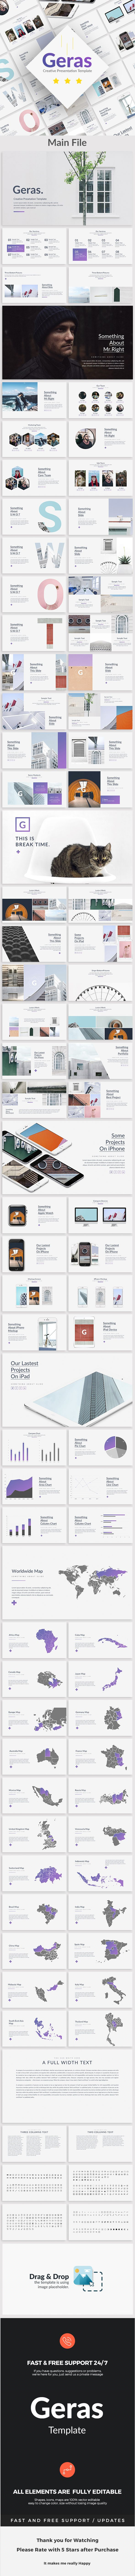 Geras Creative Powerpoint Template — Powerpoint PPT #ppt #investor presentation • Download ➝ https://graphicriver.net/item/geras-creative-powerpoint-template/19156245?ref=pxcr